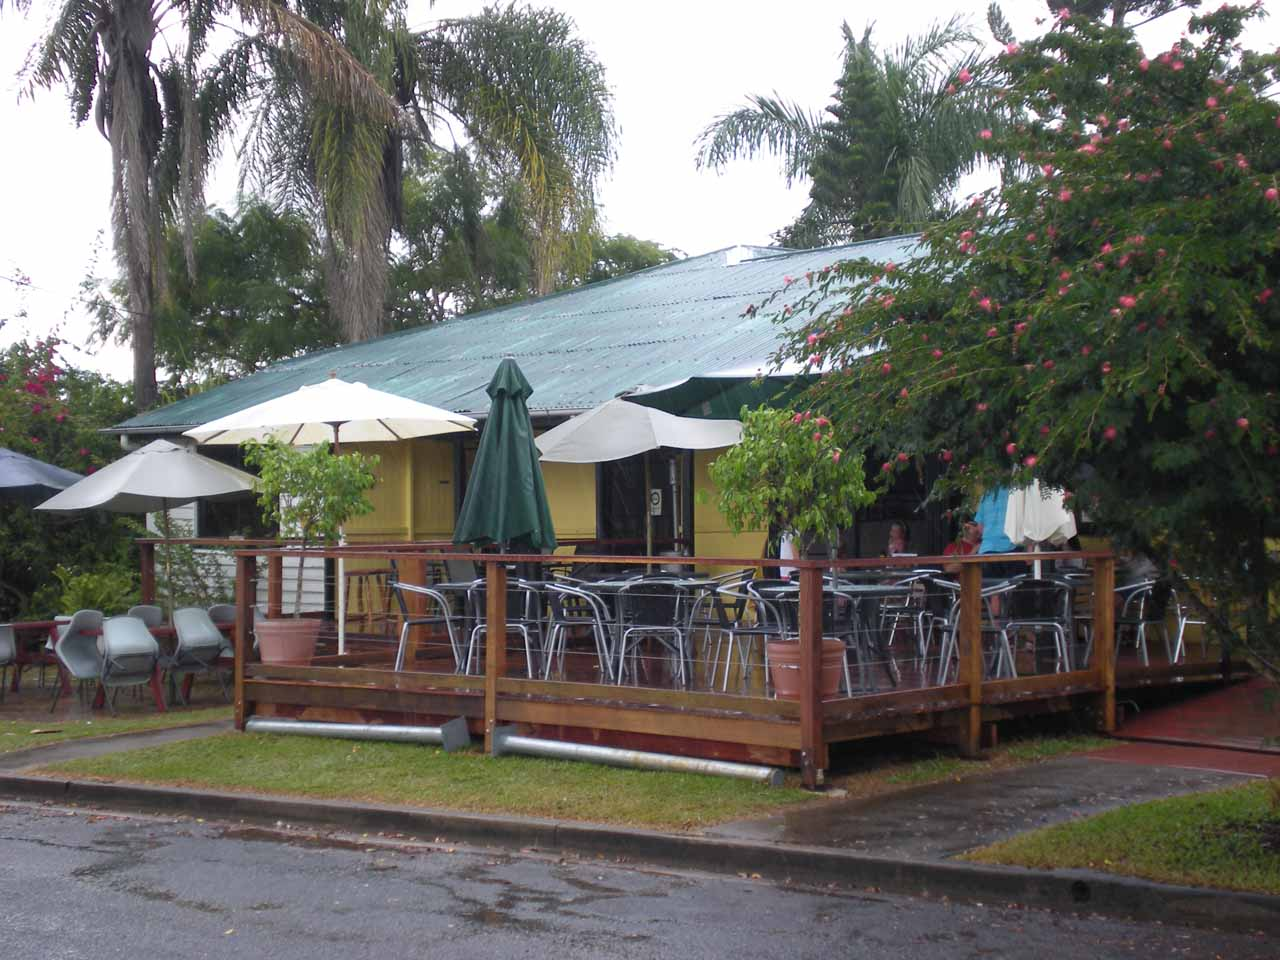 The place we bought some award-winning meat pies when we left Finch-Hatton